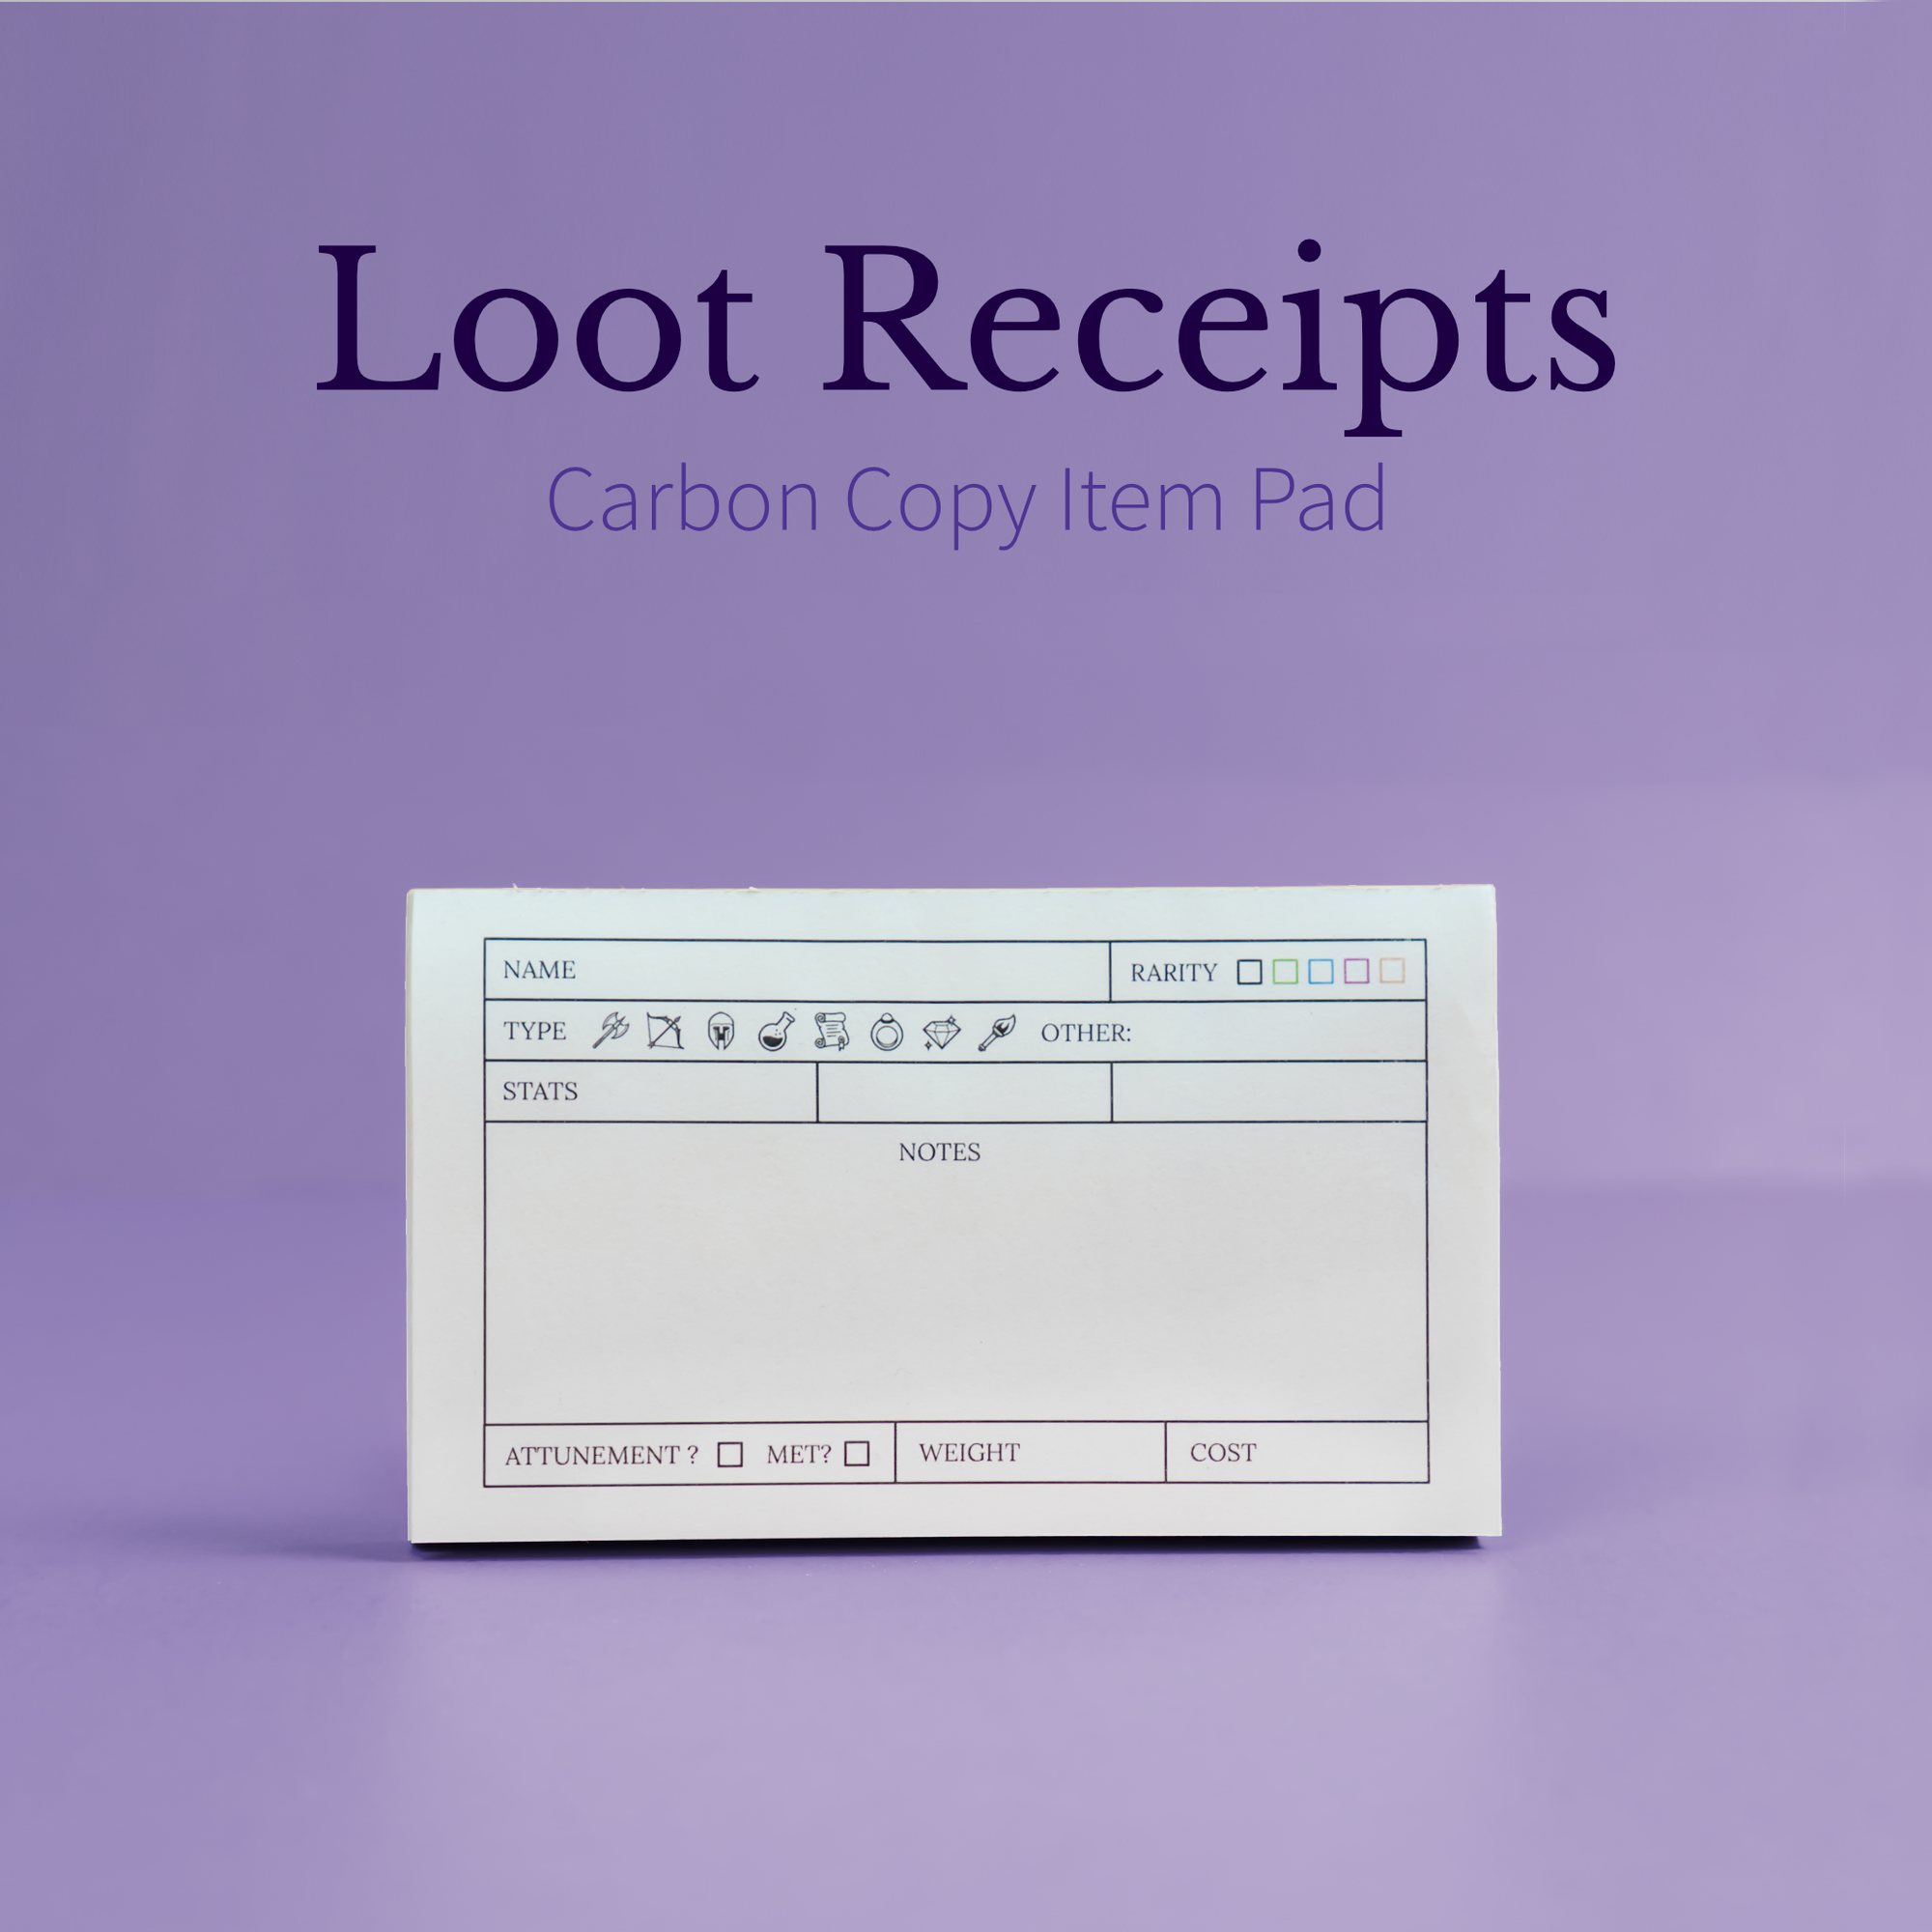 Loot Receipts